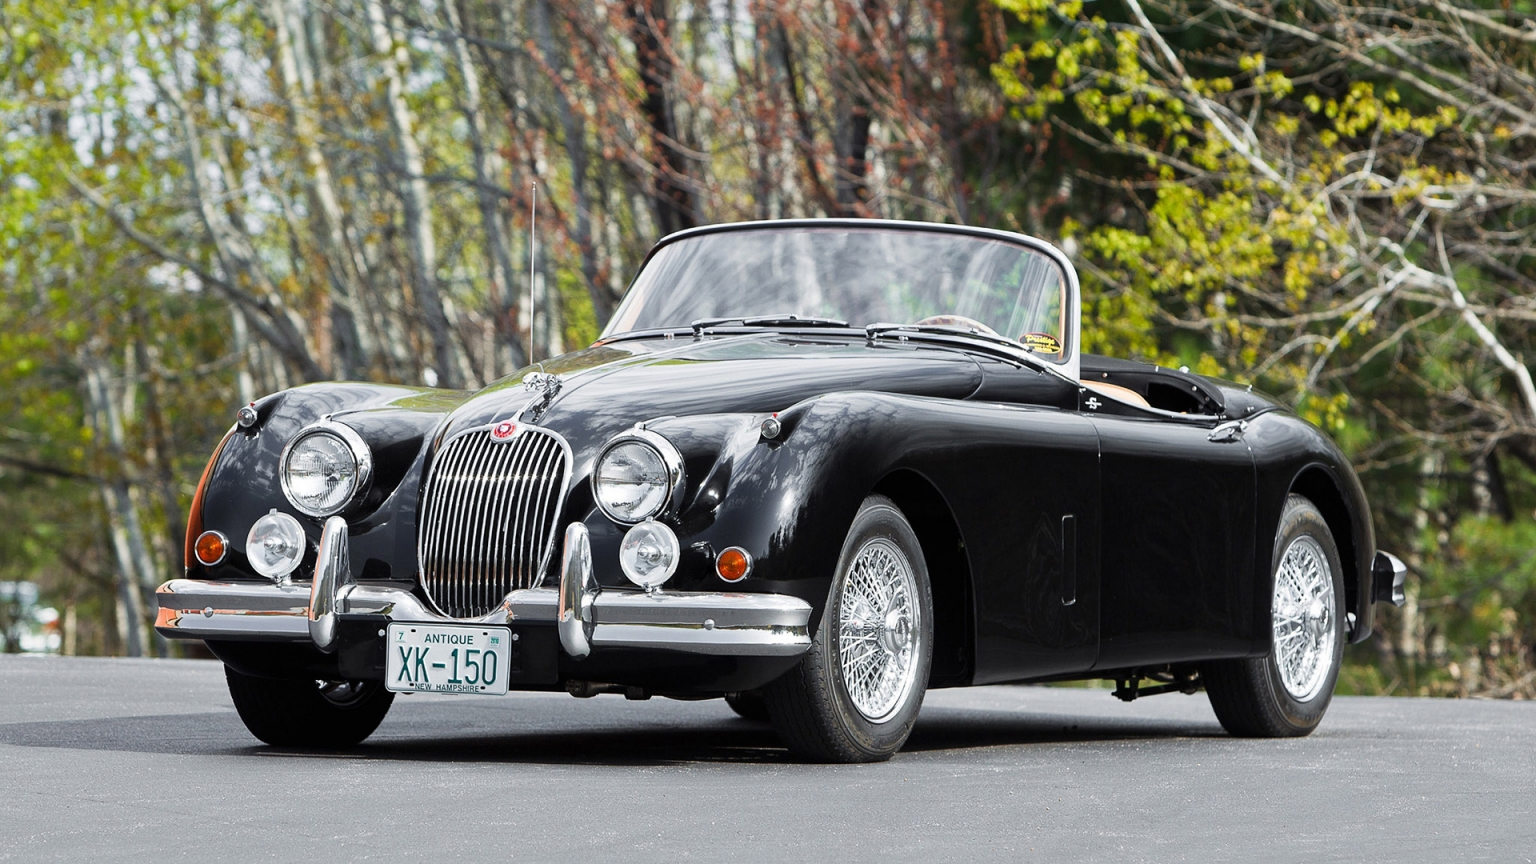 Roadster Jaguar XK 150 for 1536 x 864 HDTV resolution